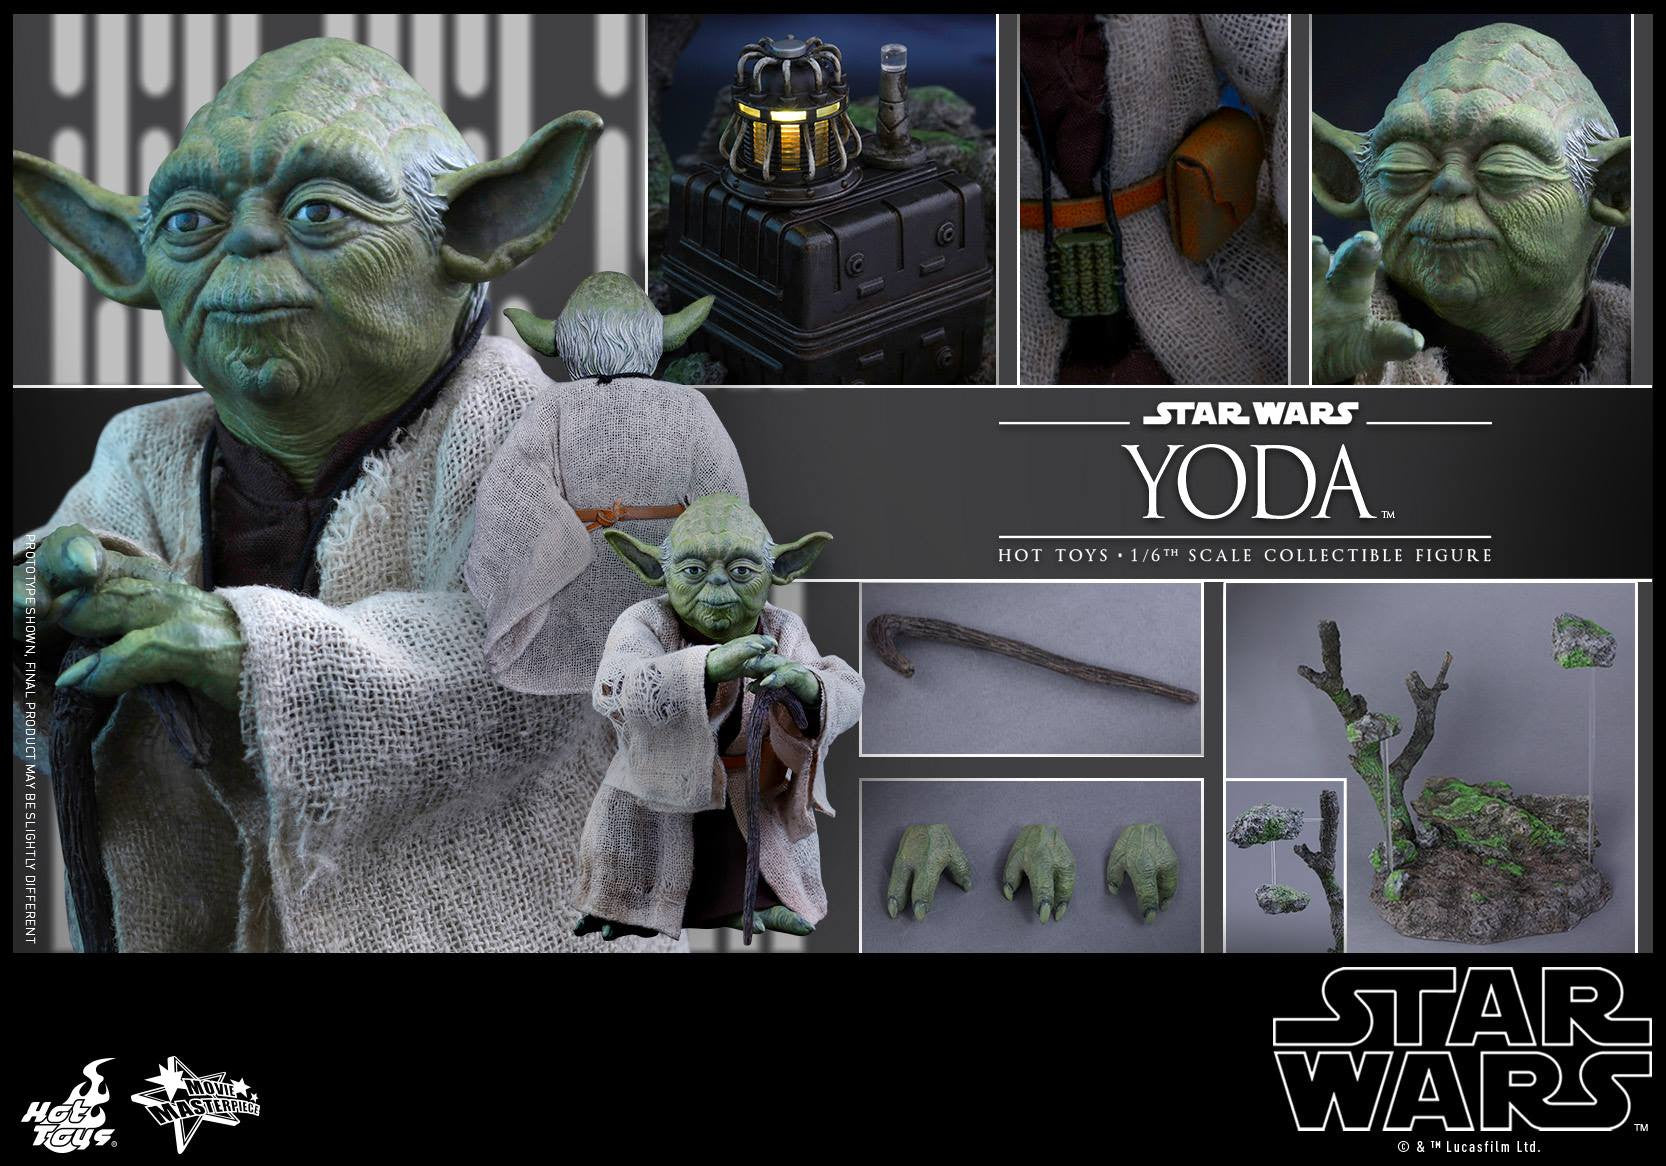 Hot Toys - MMS369 - Star Wars: The Empire Strikes Back - Yoda - Marvelous Toys - 13